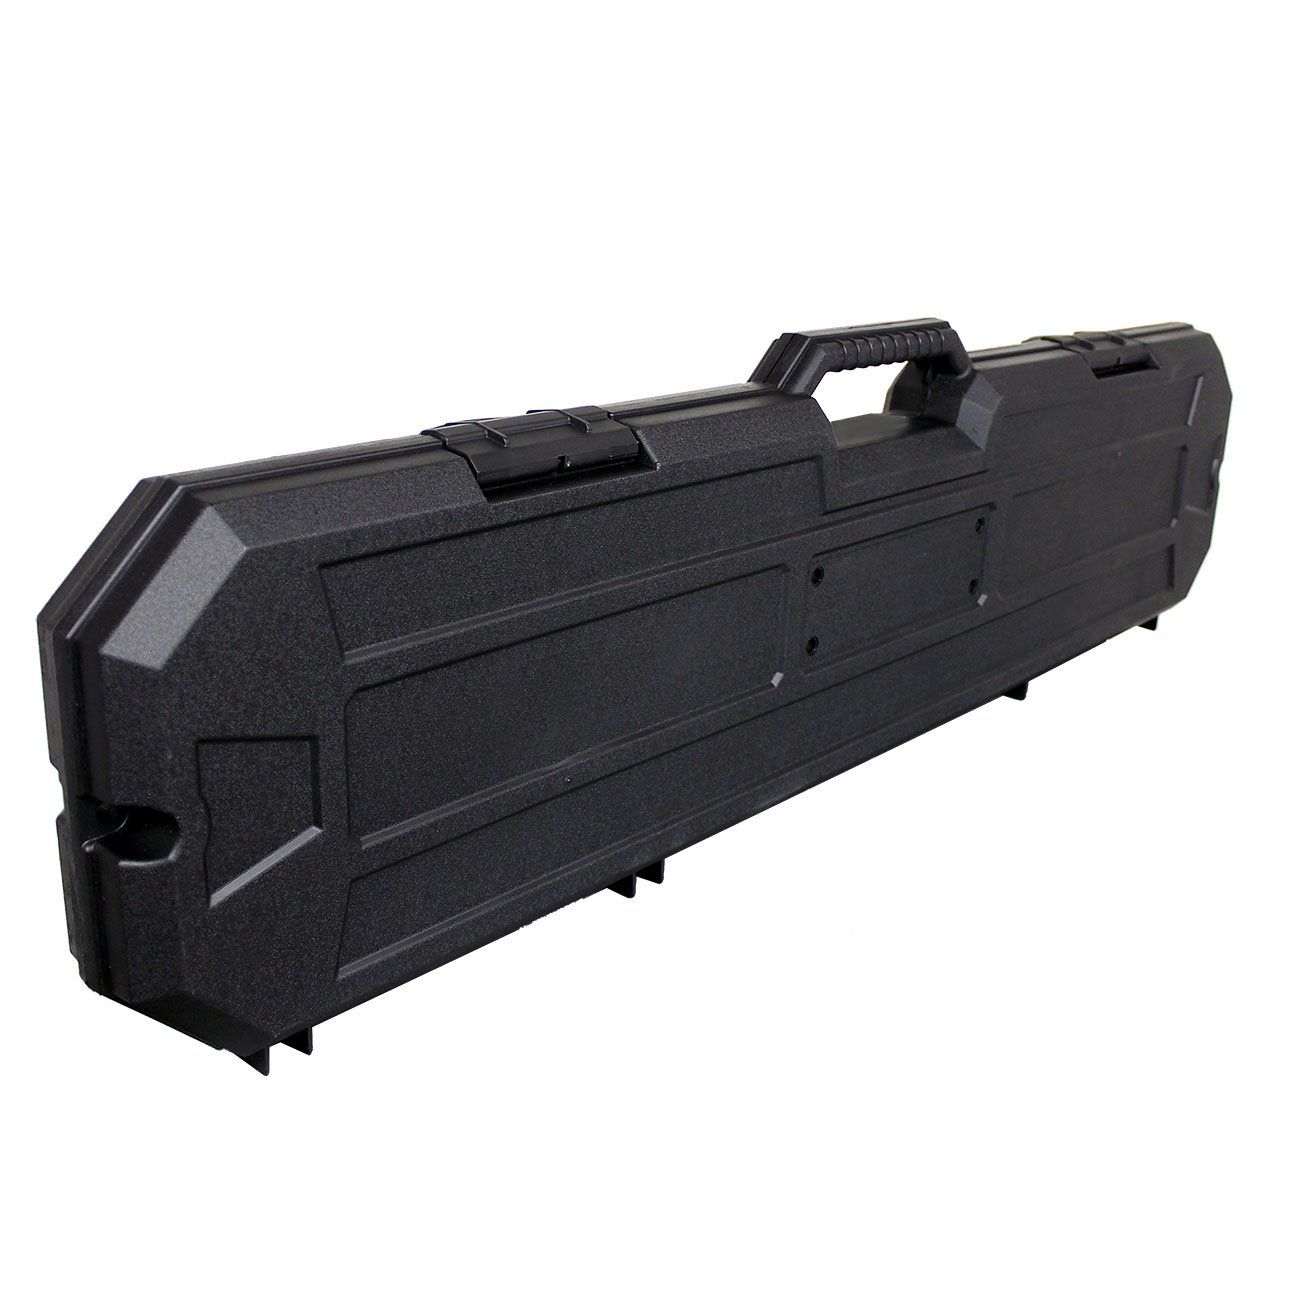 40'' #759 Black Hard Rifle Case with Convoluted Foam